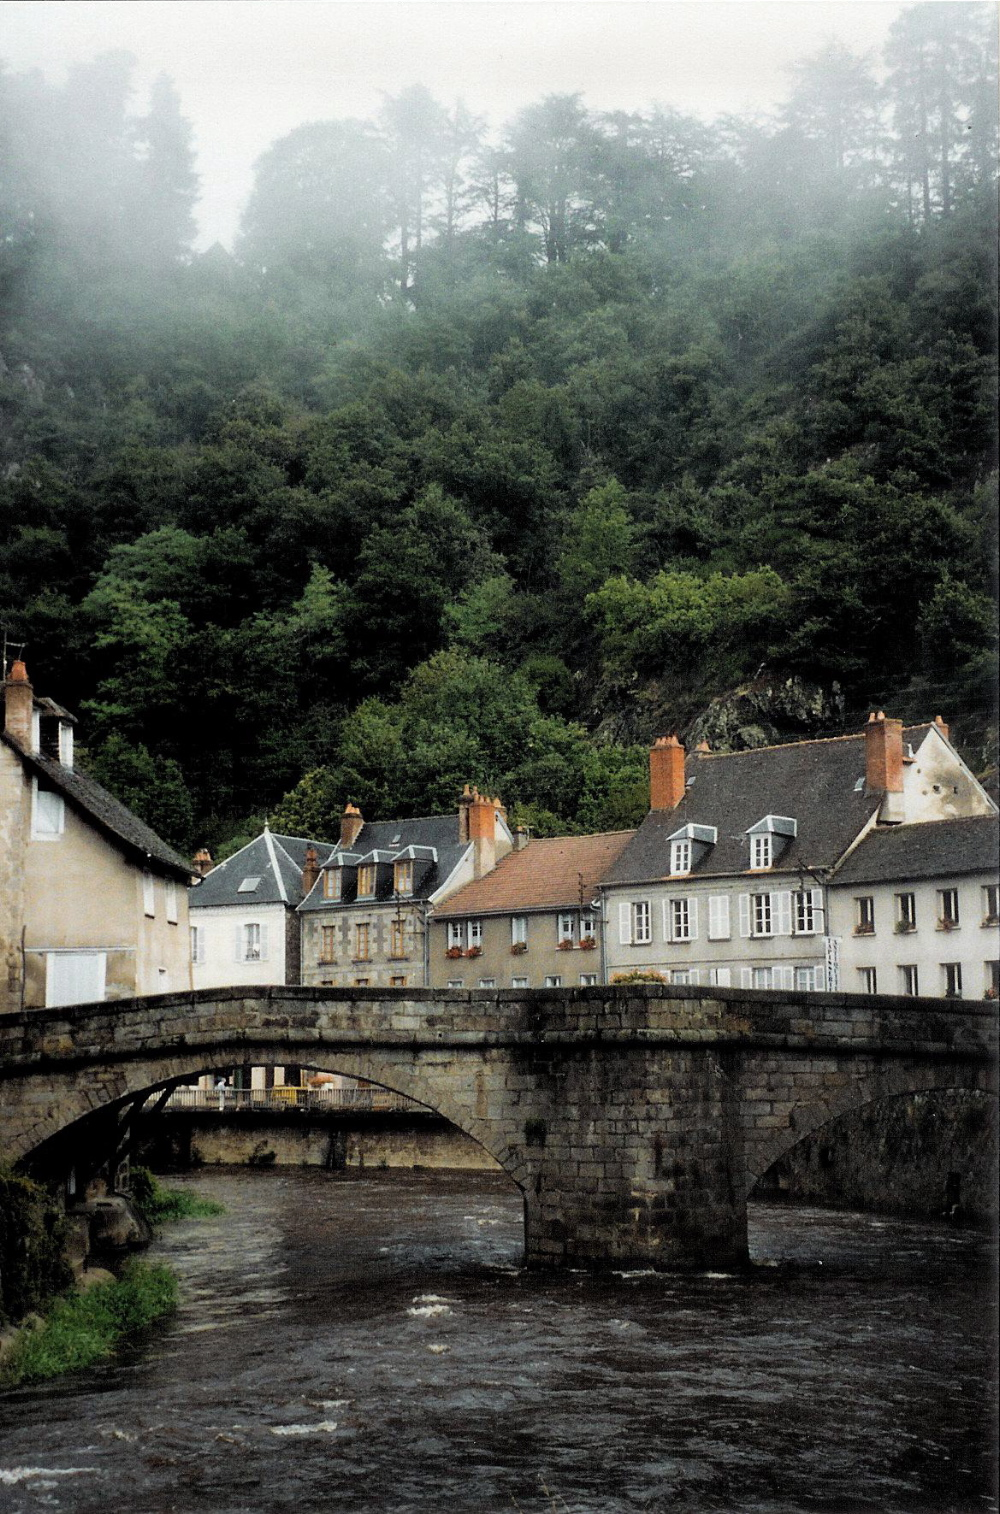 Medieval bridge over the Creuse River in Aubusson, France